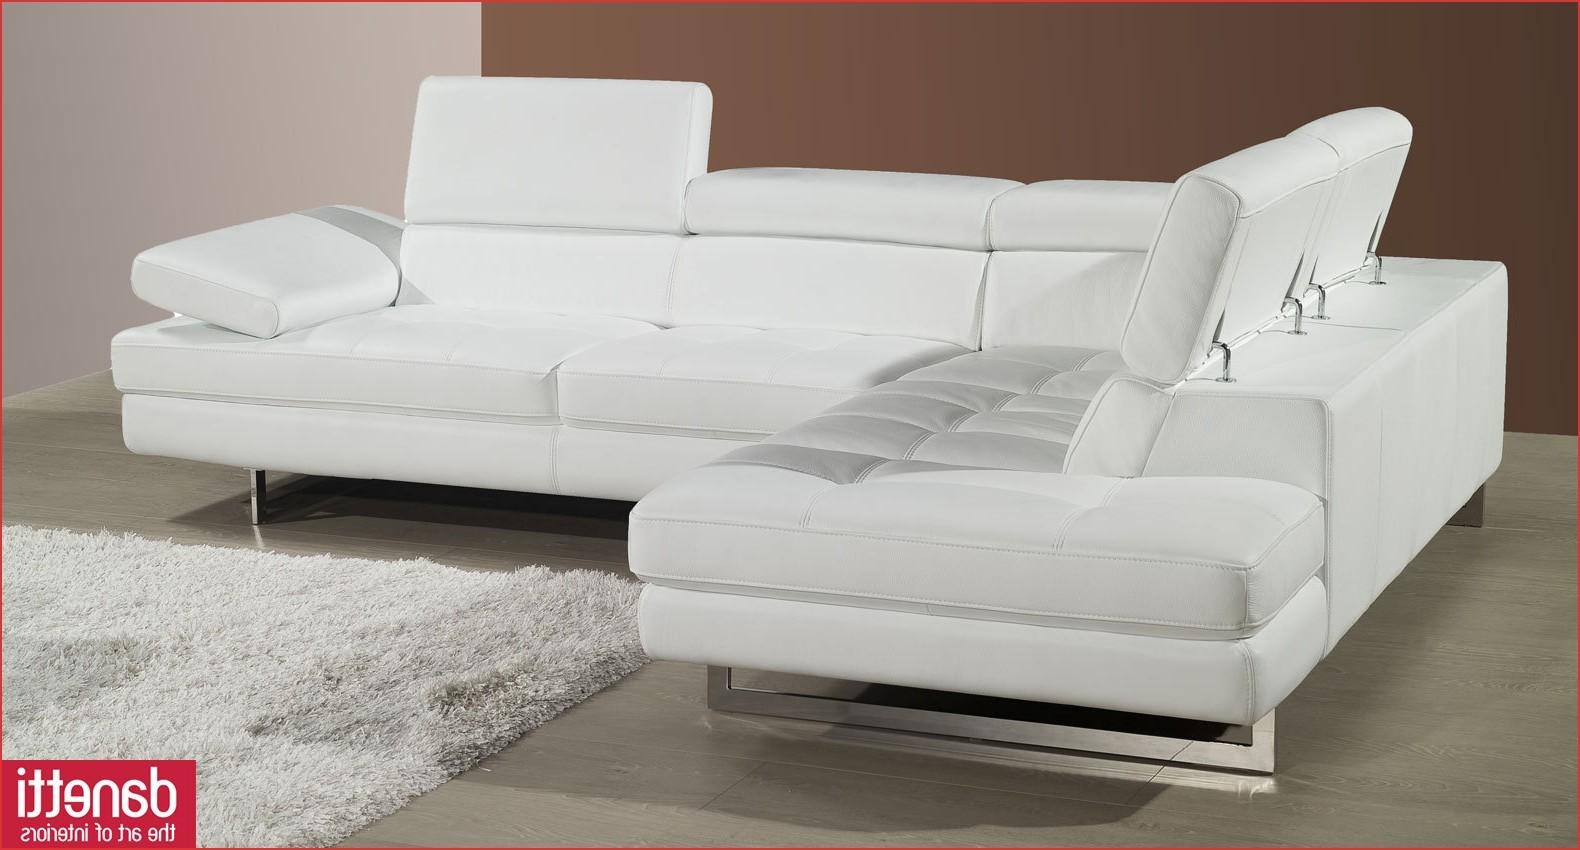 Contemporary Leather Corner Sofas Best Of Glamour Leather Corner With Leather Corner Sofas (View 13 of 20)